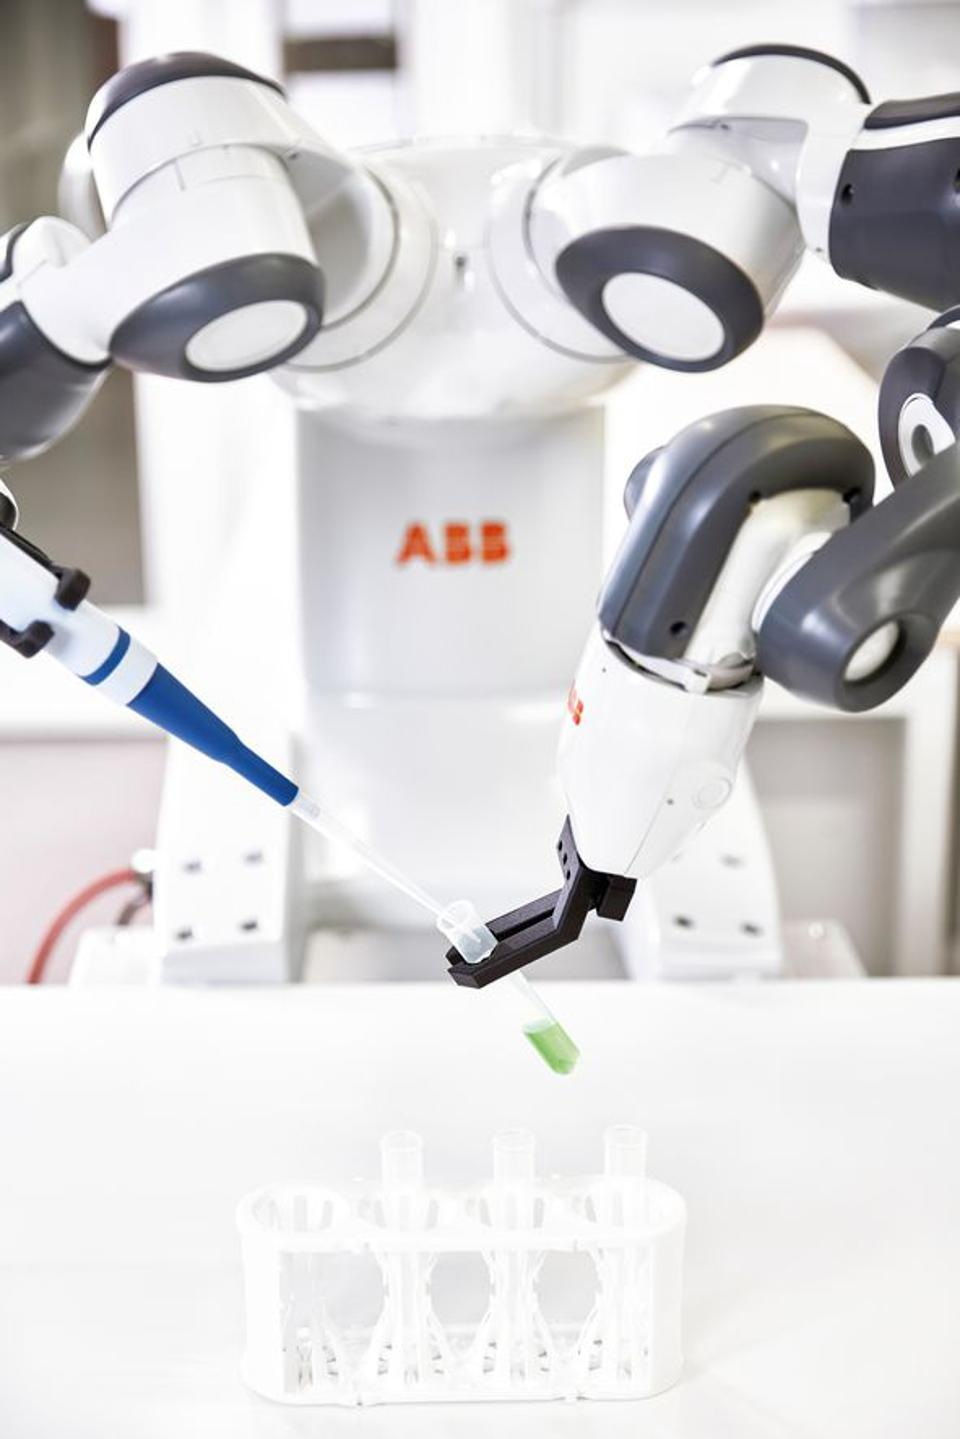 ABB's dual-armed Yumi robot has taken robot-human collaboration to new heights.